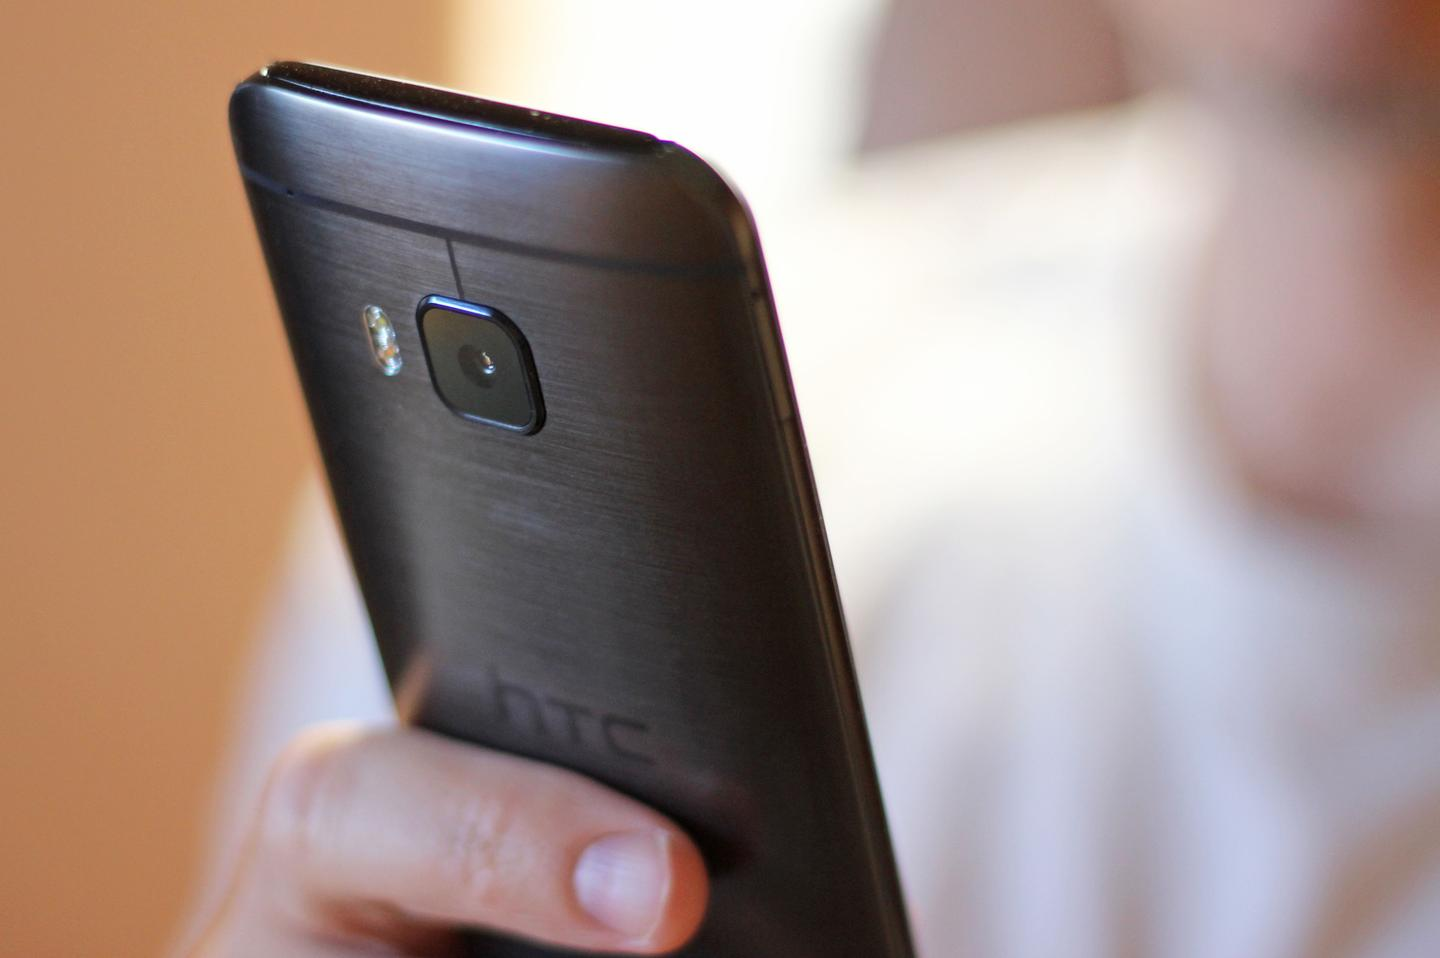 The One M9's 20 MP rear camera is one of its highlights (Photo: Will Shanklin/Gizmag.com)